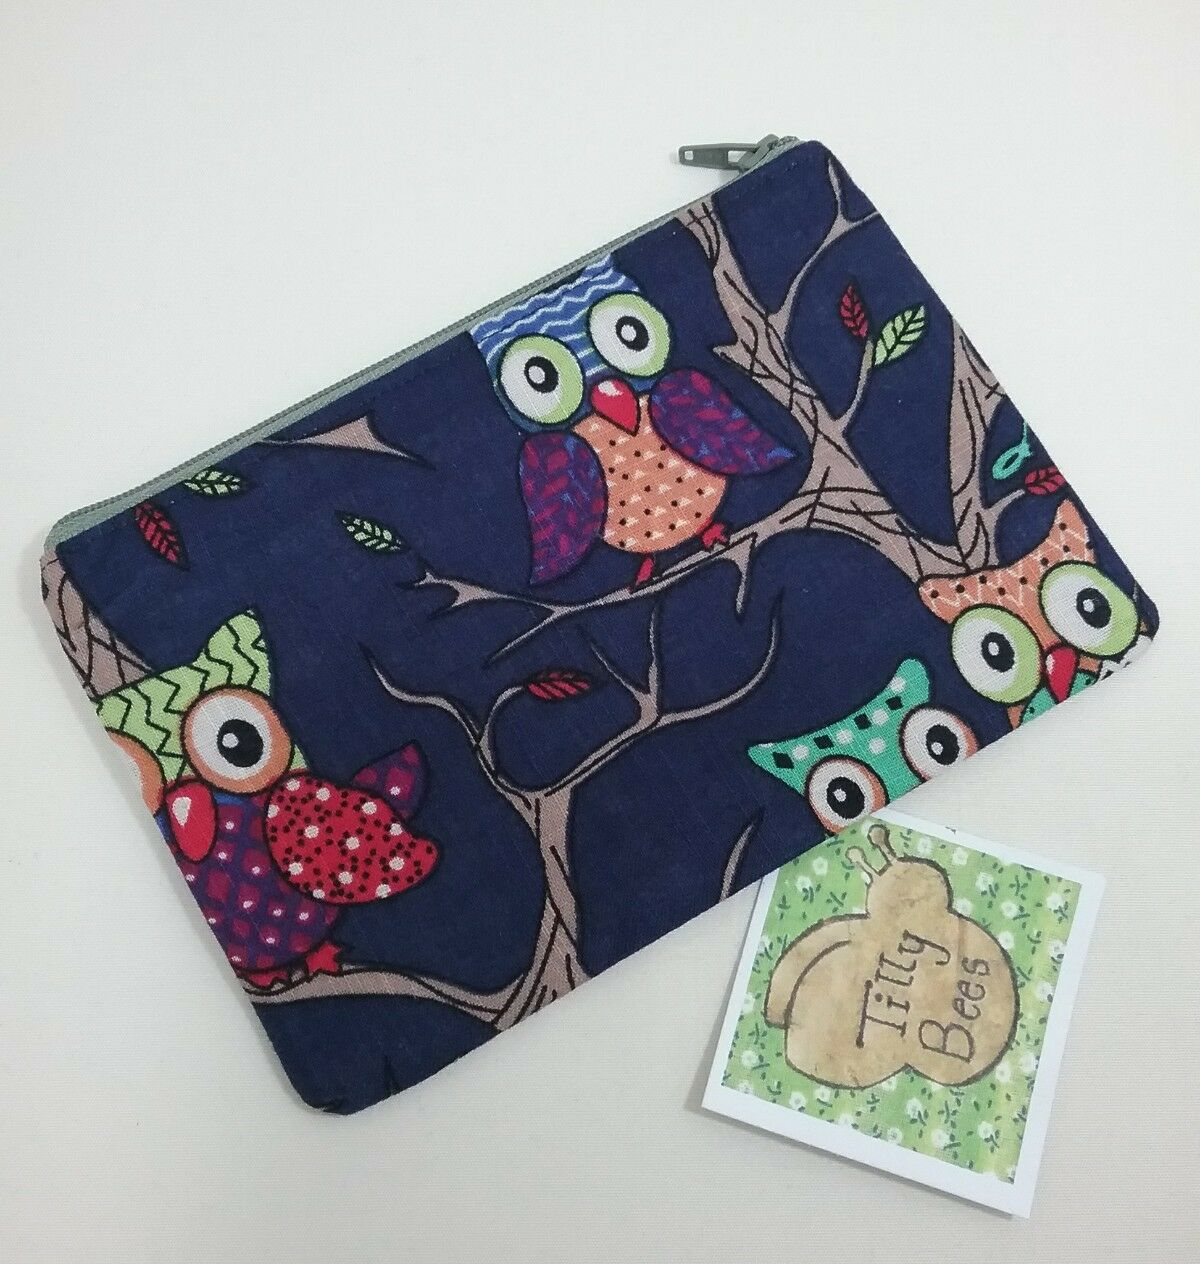 Ladies handmade navy owl lover pouch purse pencil case make up money lined gift